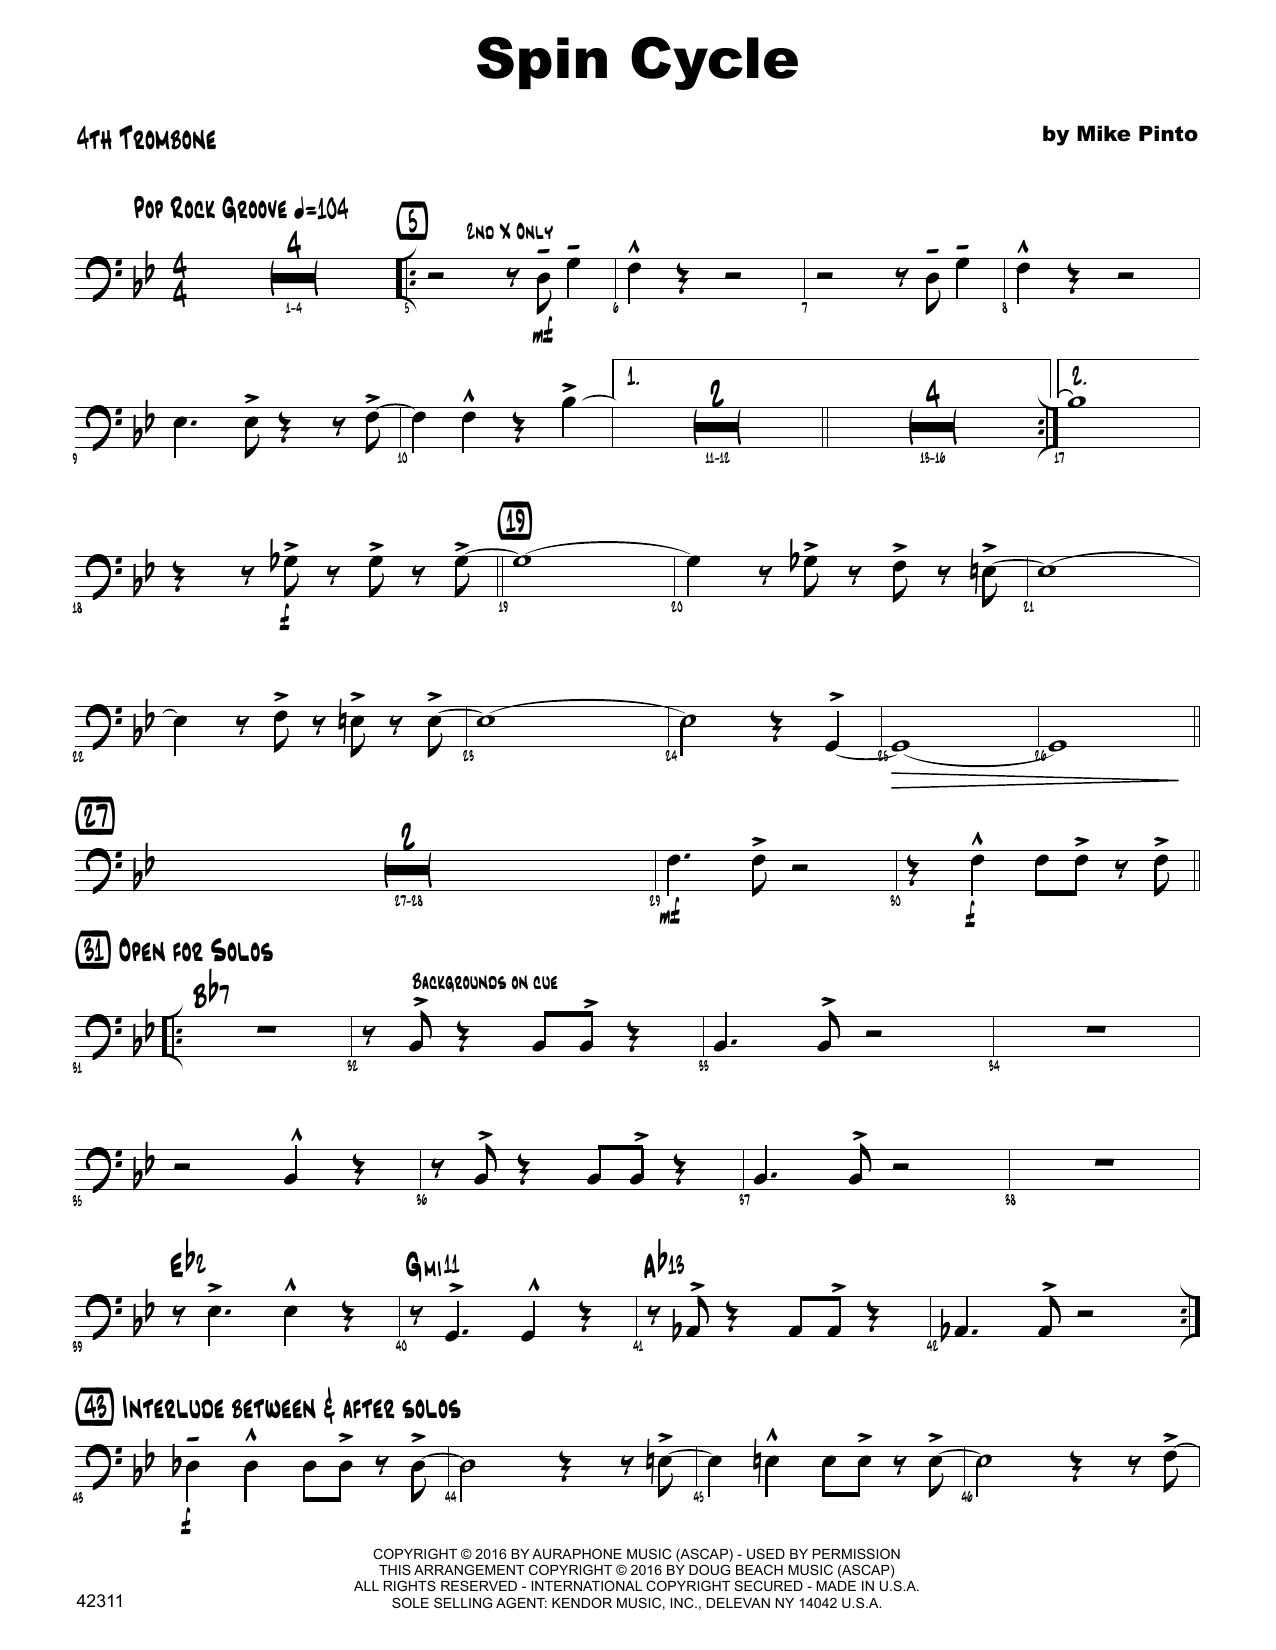 Spin Cycle - 4th Trombone Sheet Music